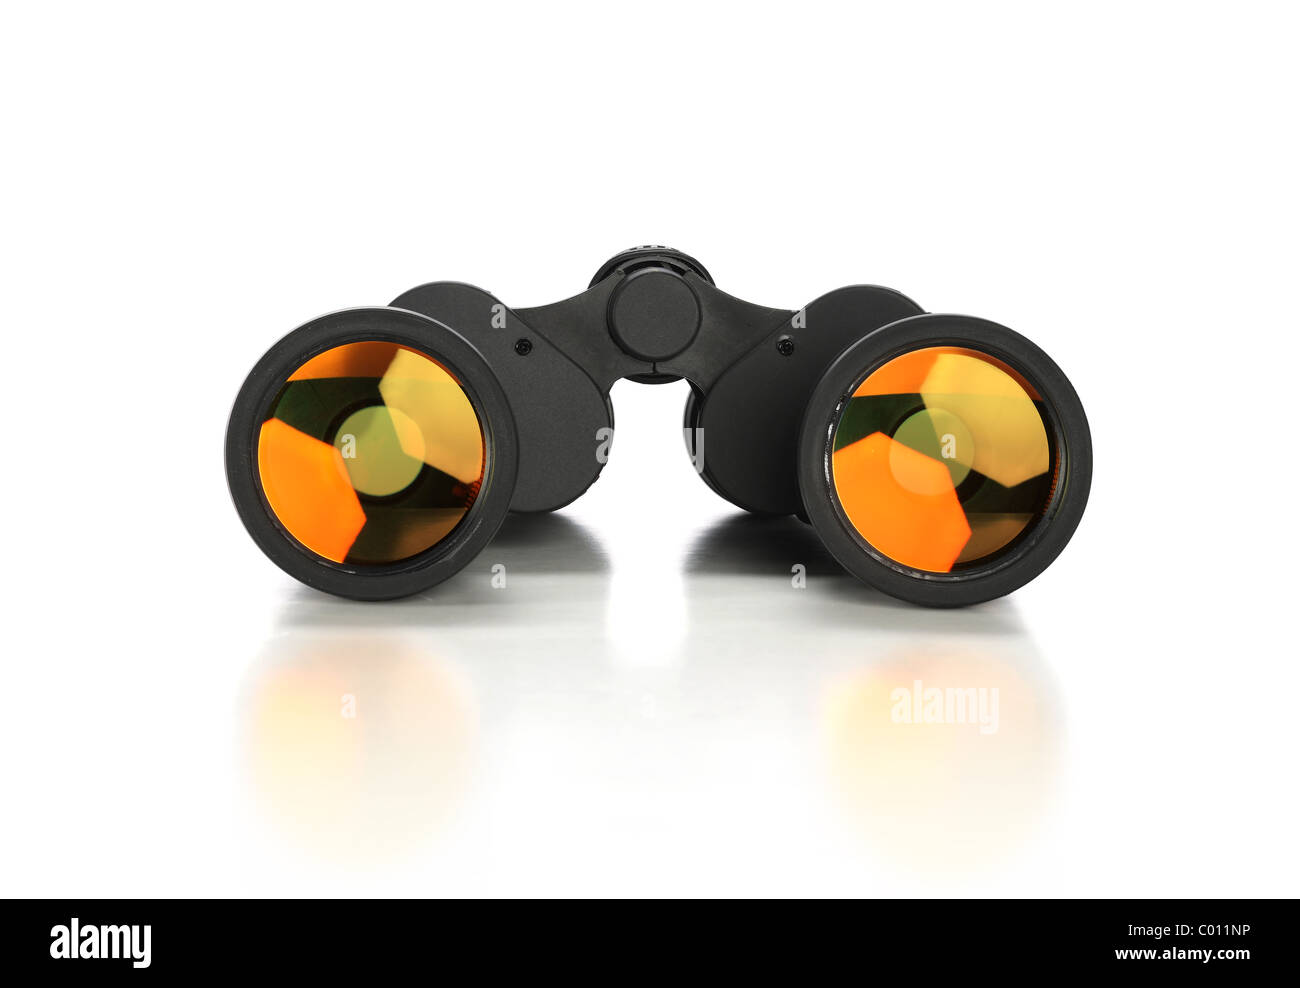 Binoculars over white background with reflections on foreground - Stock Image